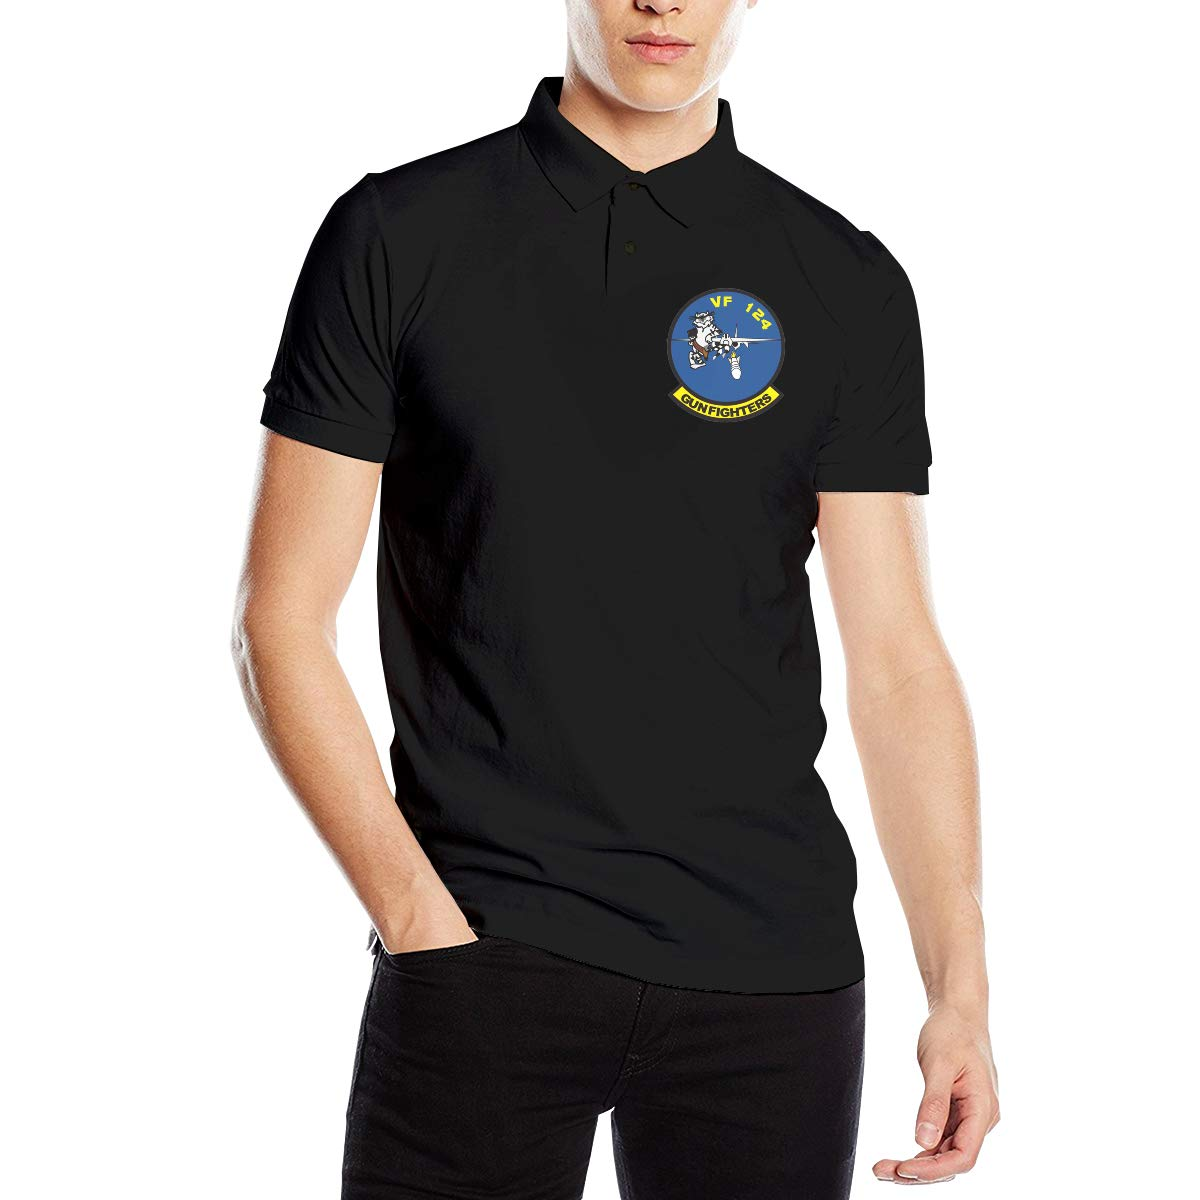 You Know And Good VF-124 Gunfighters Patch Mens Regular-Fit Cotton Polo Shirt Short Sleeve